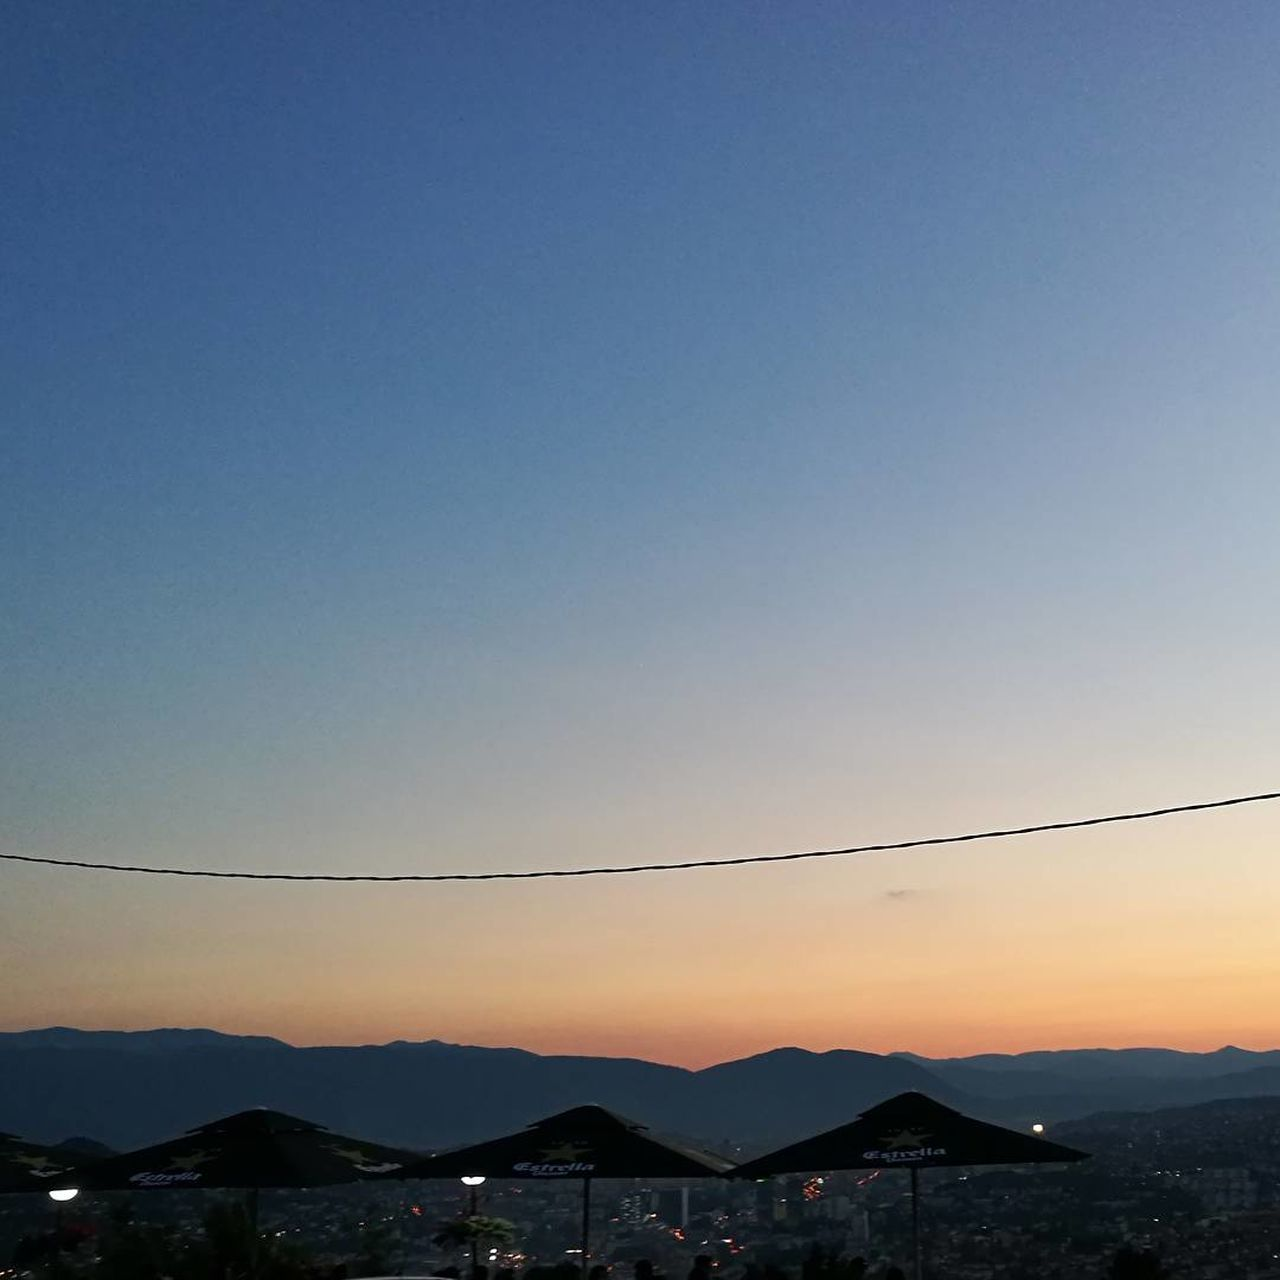 mountain, sunset, silhouette, beauty in nature, nature, copy space, no people, cable, clear sky, outdoors, scenics, tranquil scene, mountain range, sky, landscape, blue, tranquility, electricity, building exterior, architecture, day